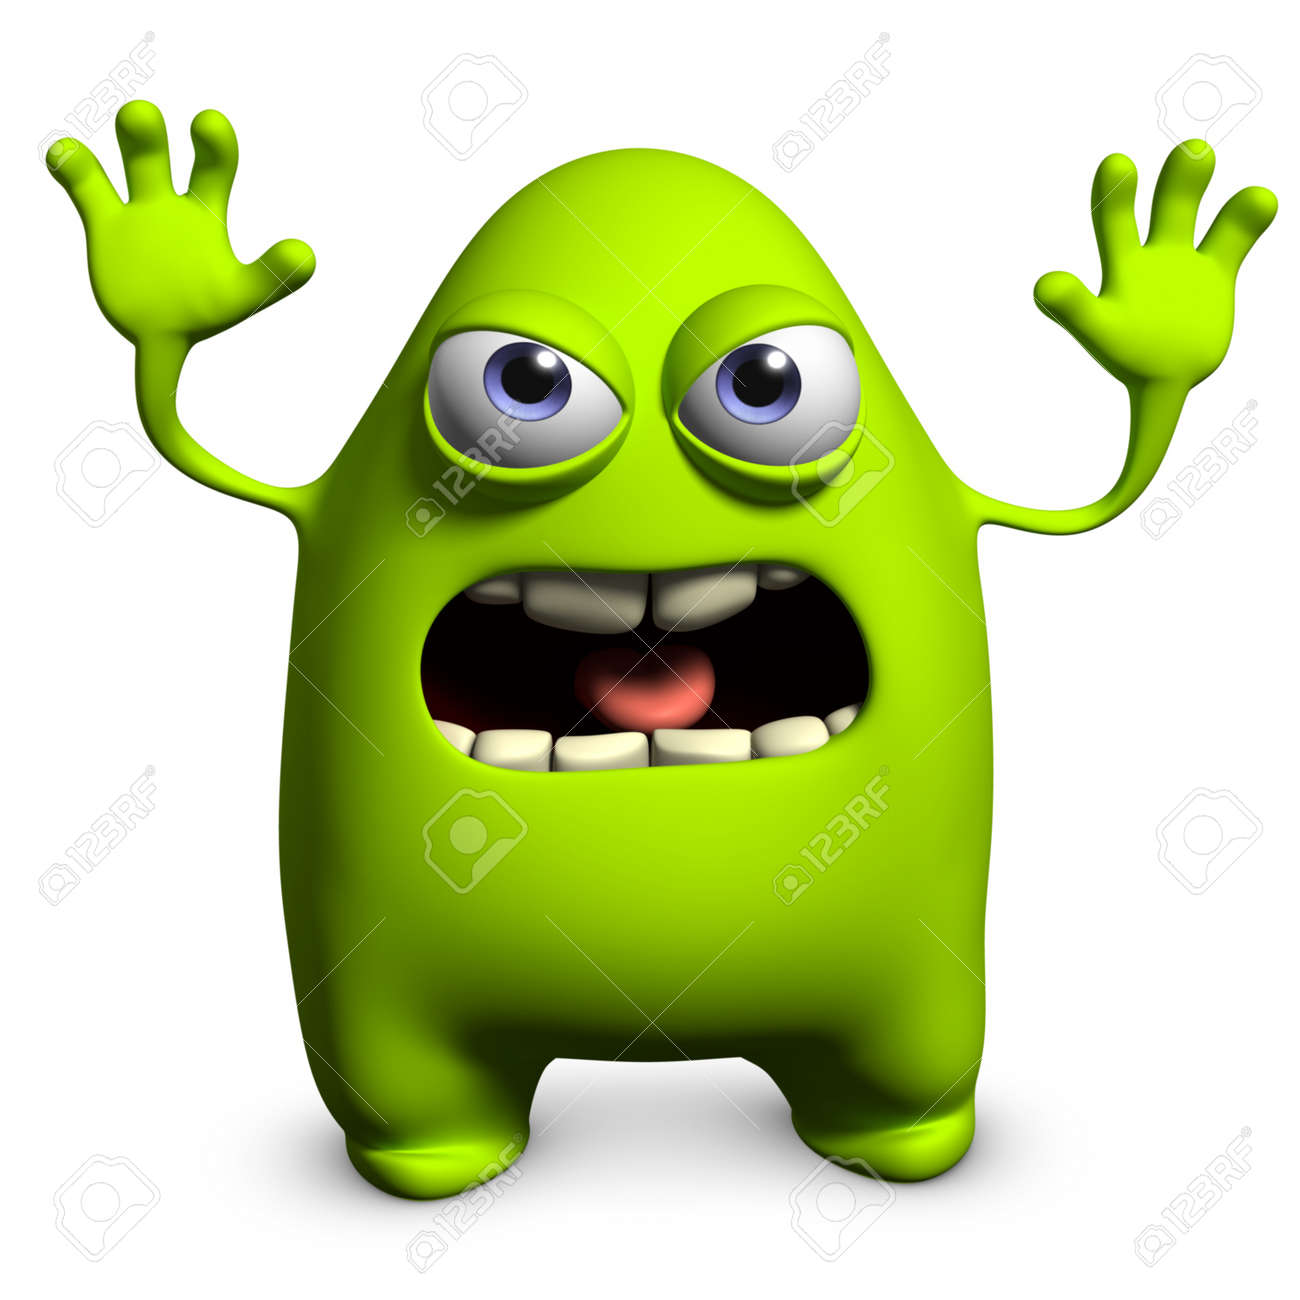 3d cartoon cute monster stock photo picture and royalty free